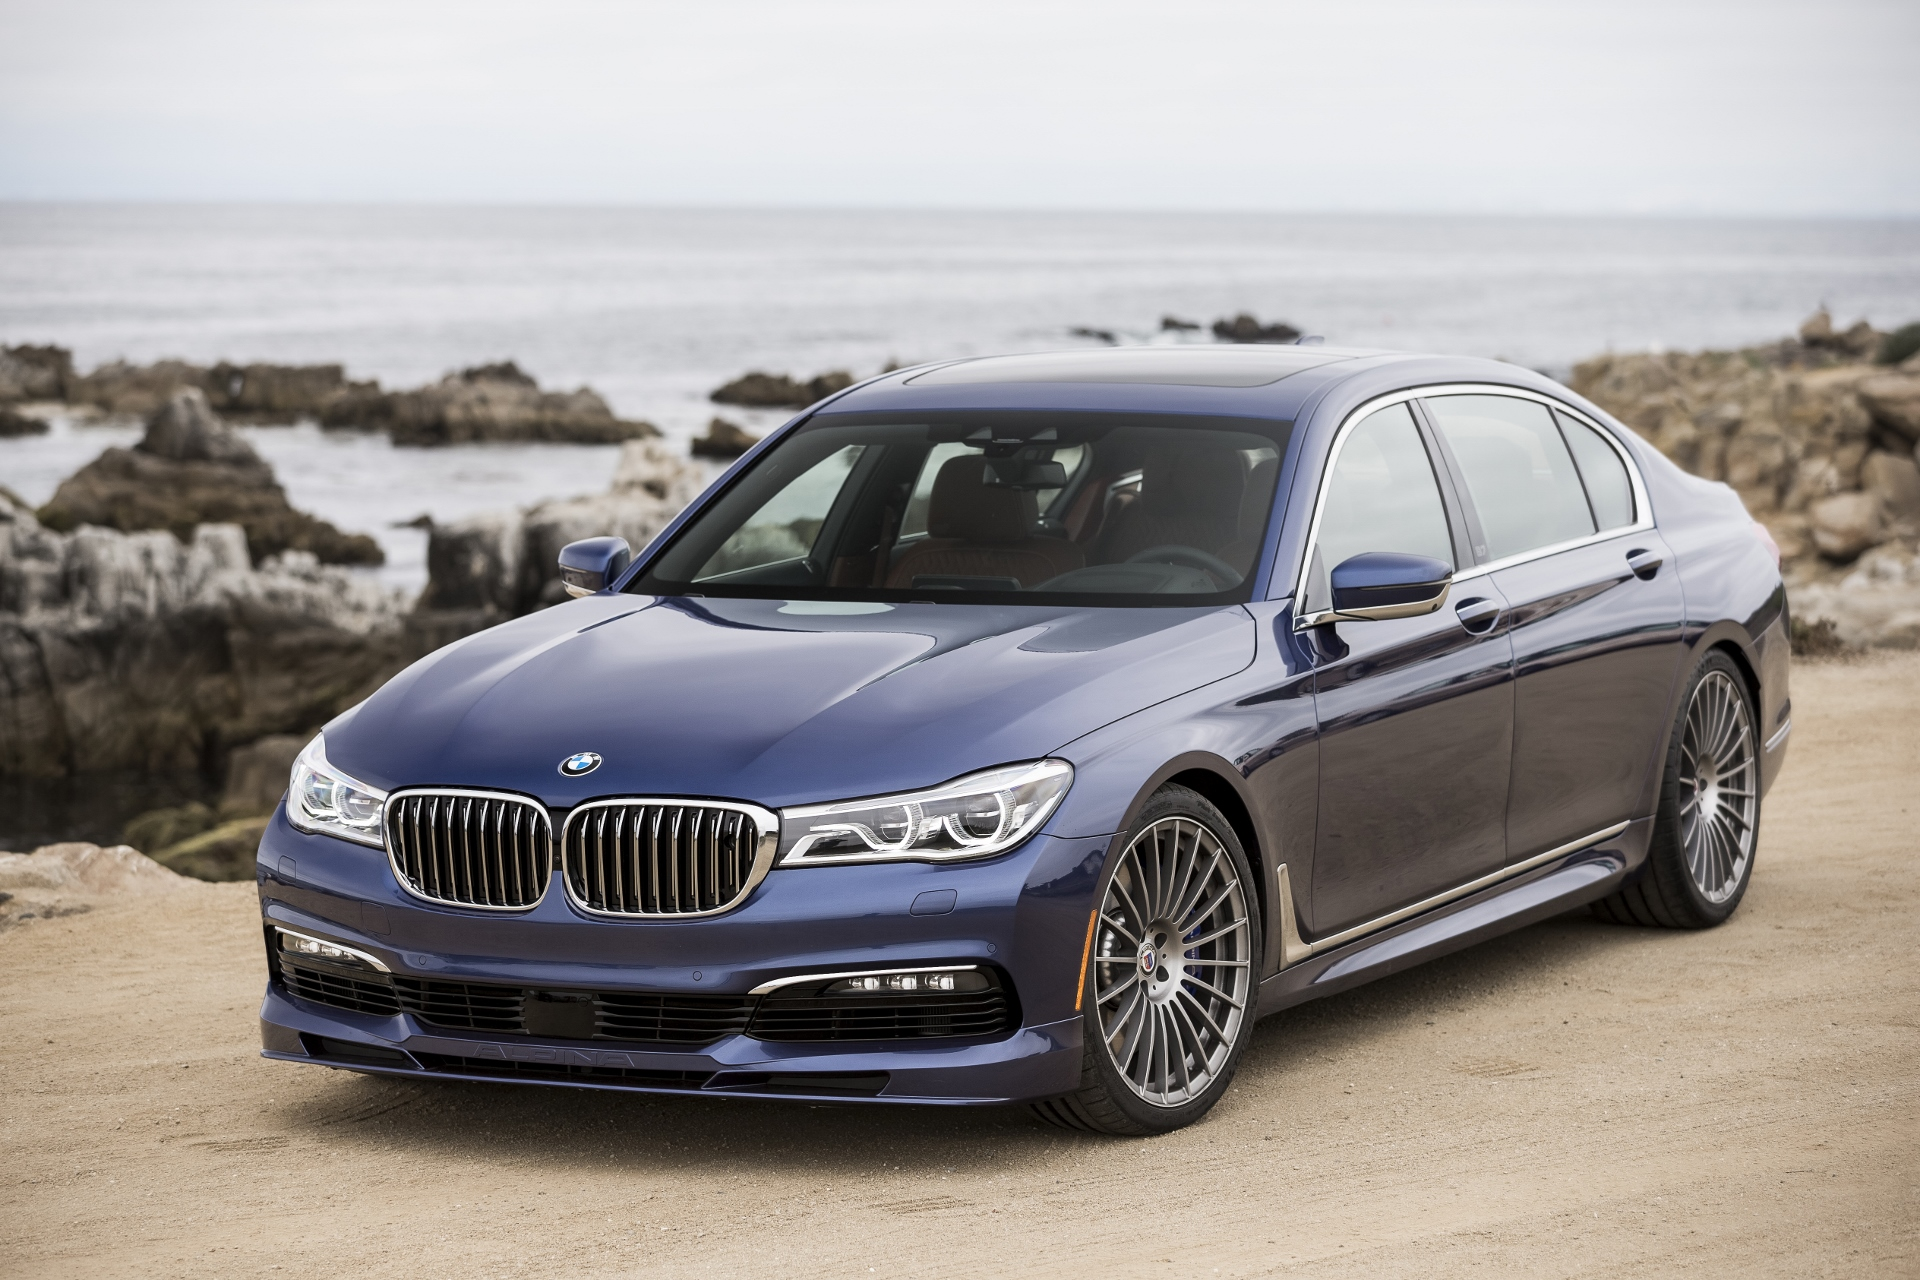 BMW Alpina B First Drive Review A Better BMW - Bmw m7 alpina